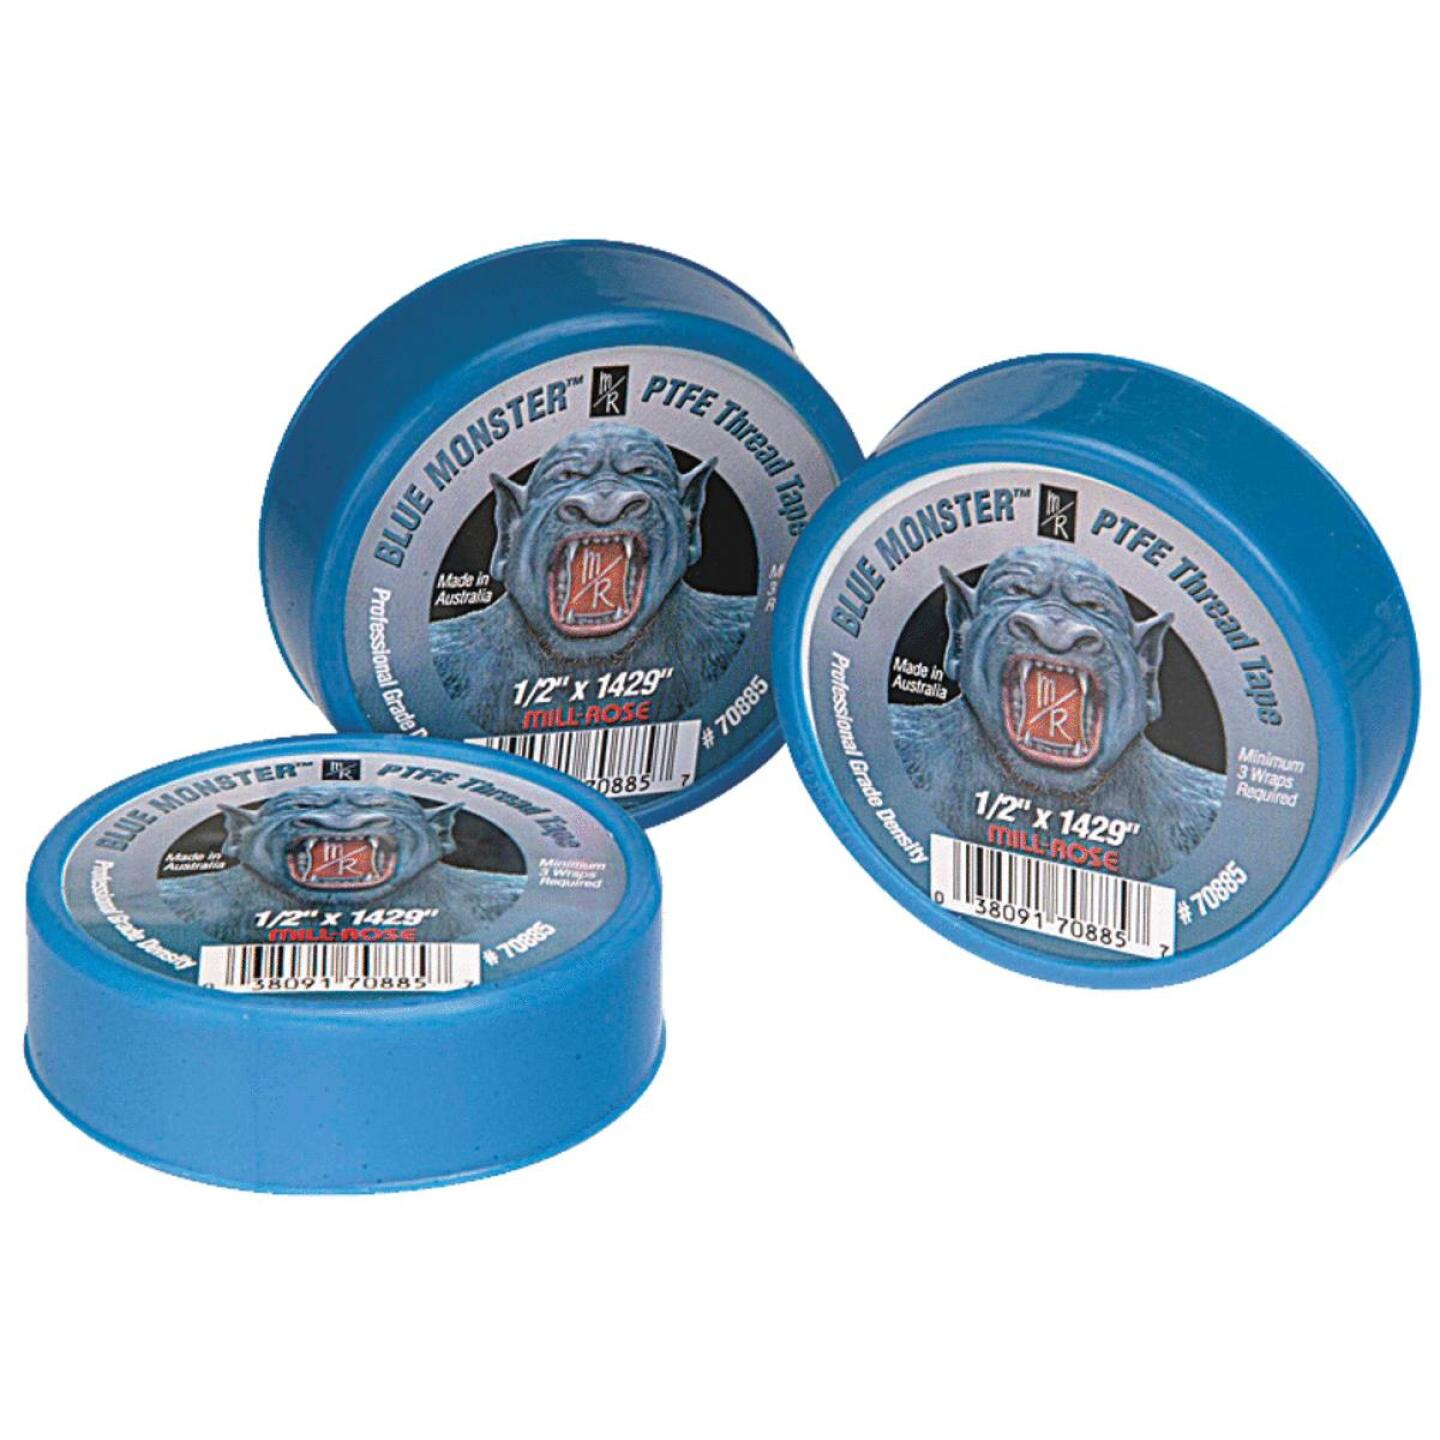 BLUE MONSTER 1/2 In. x 1429 In. Blue Thread Seal Tape Image 1